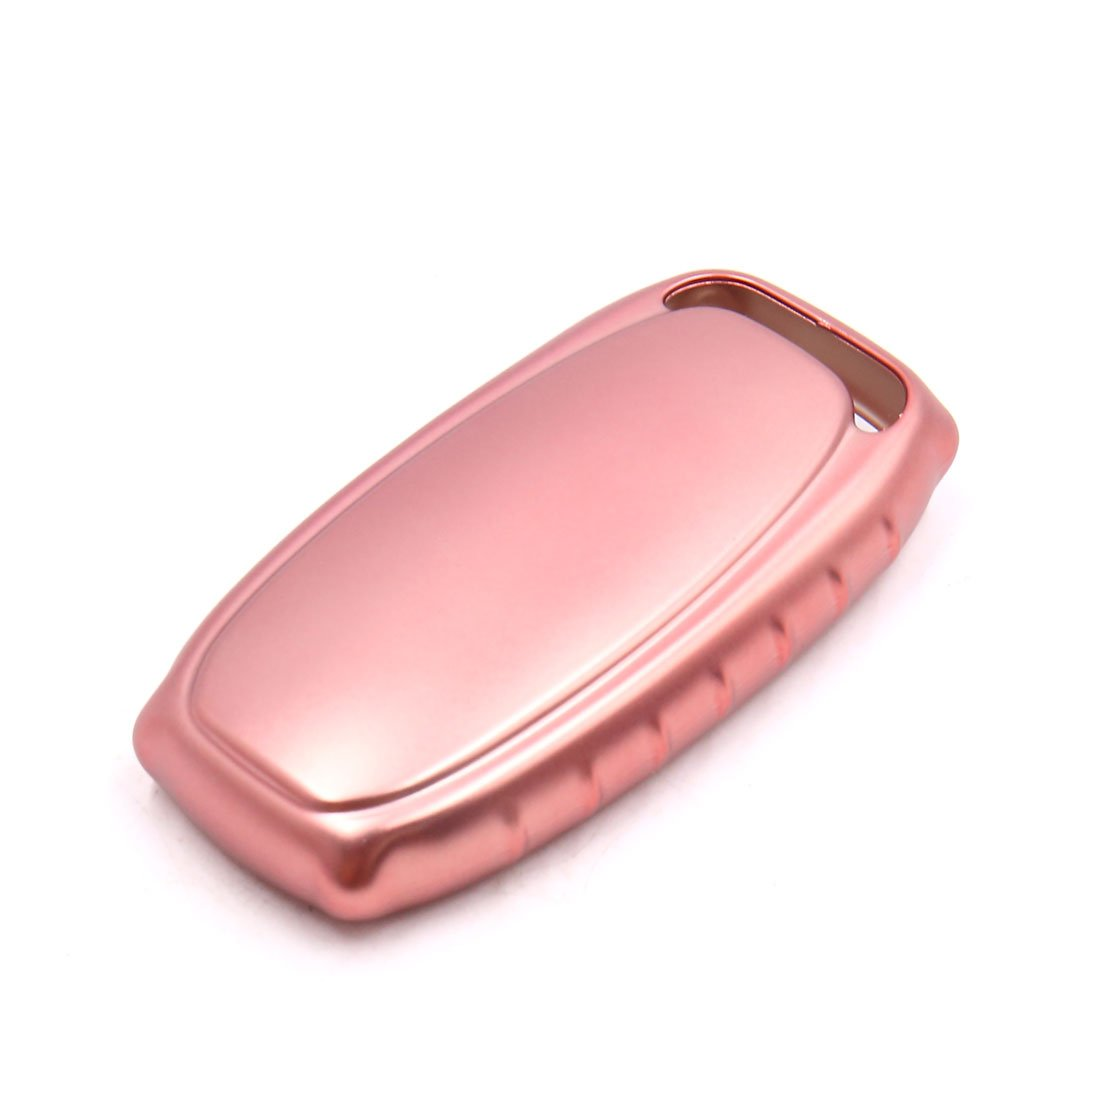 uxcell Pink Remote Key Case Holder Shell Protect Cover Fit For Audi A4L A6L A7 A8 S5